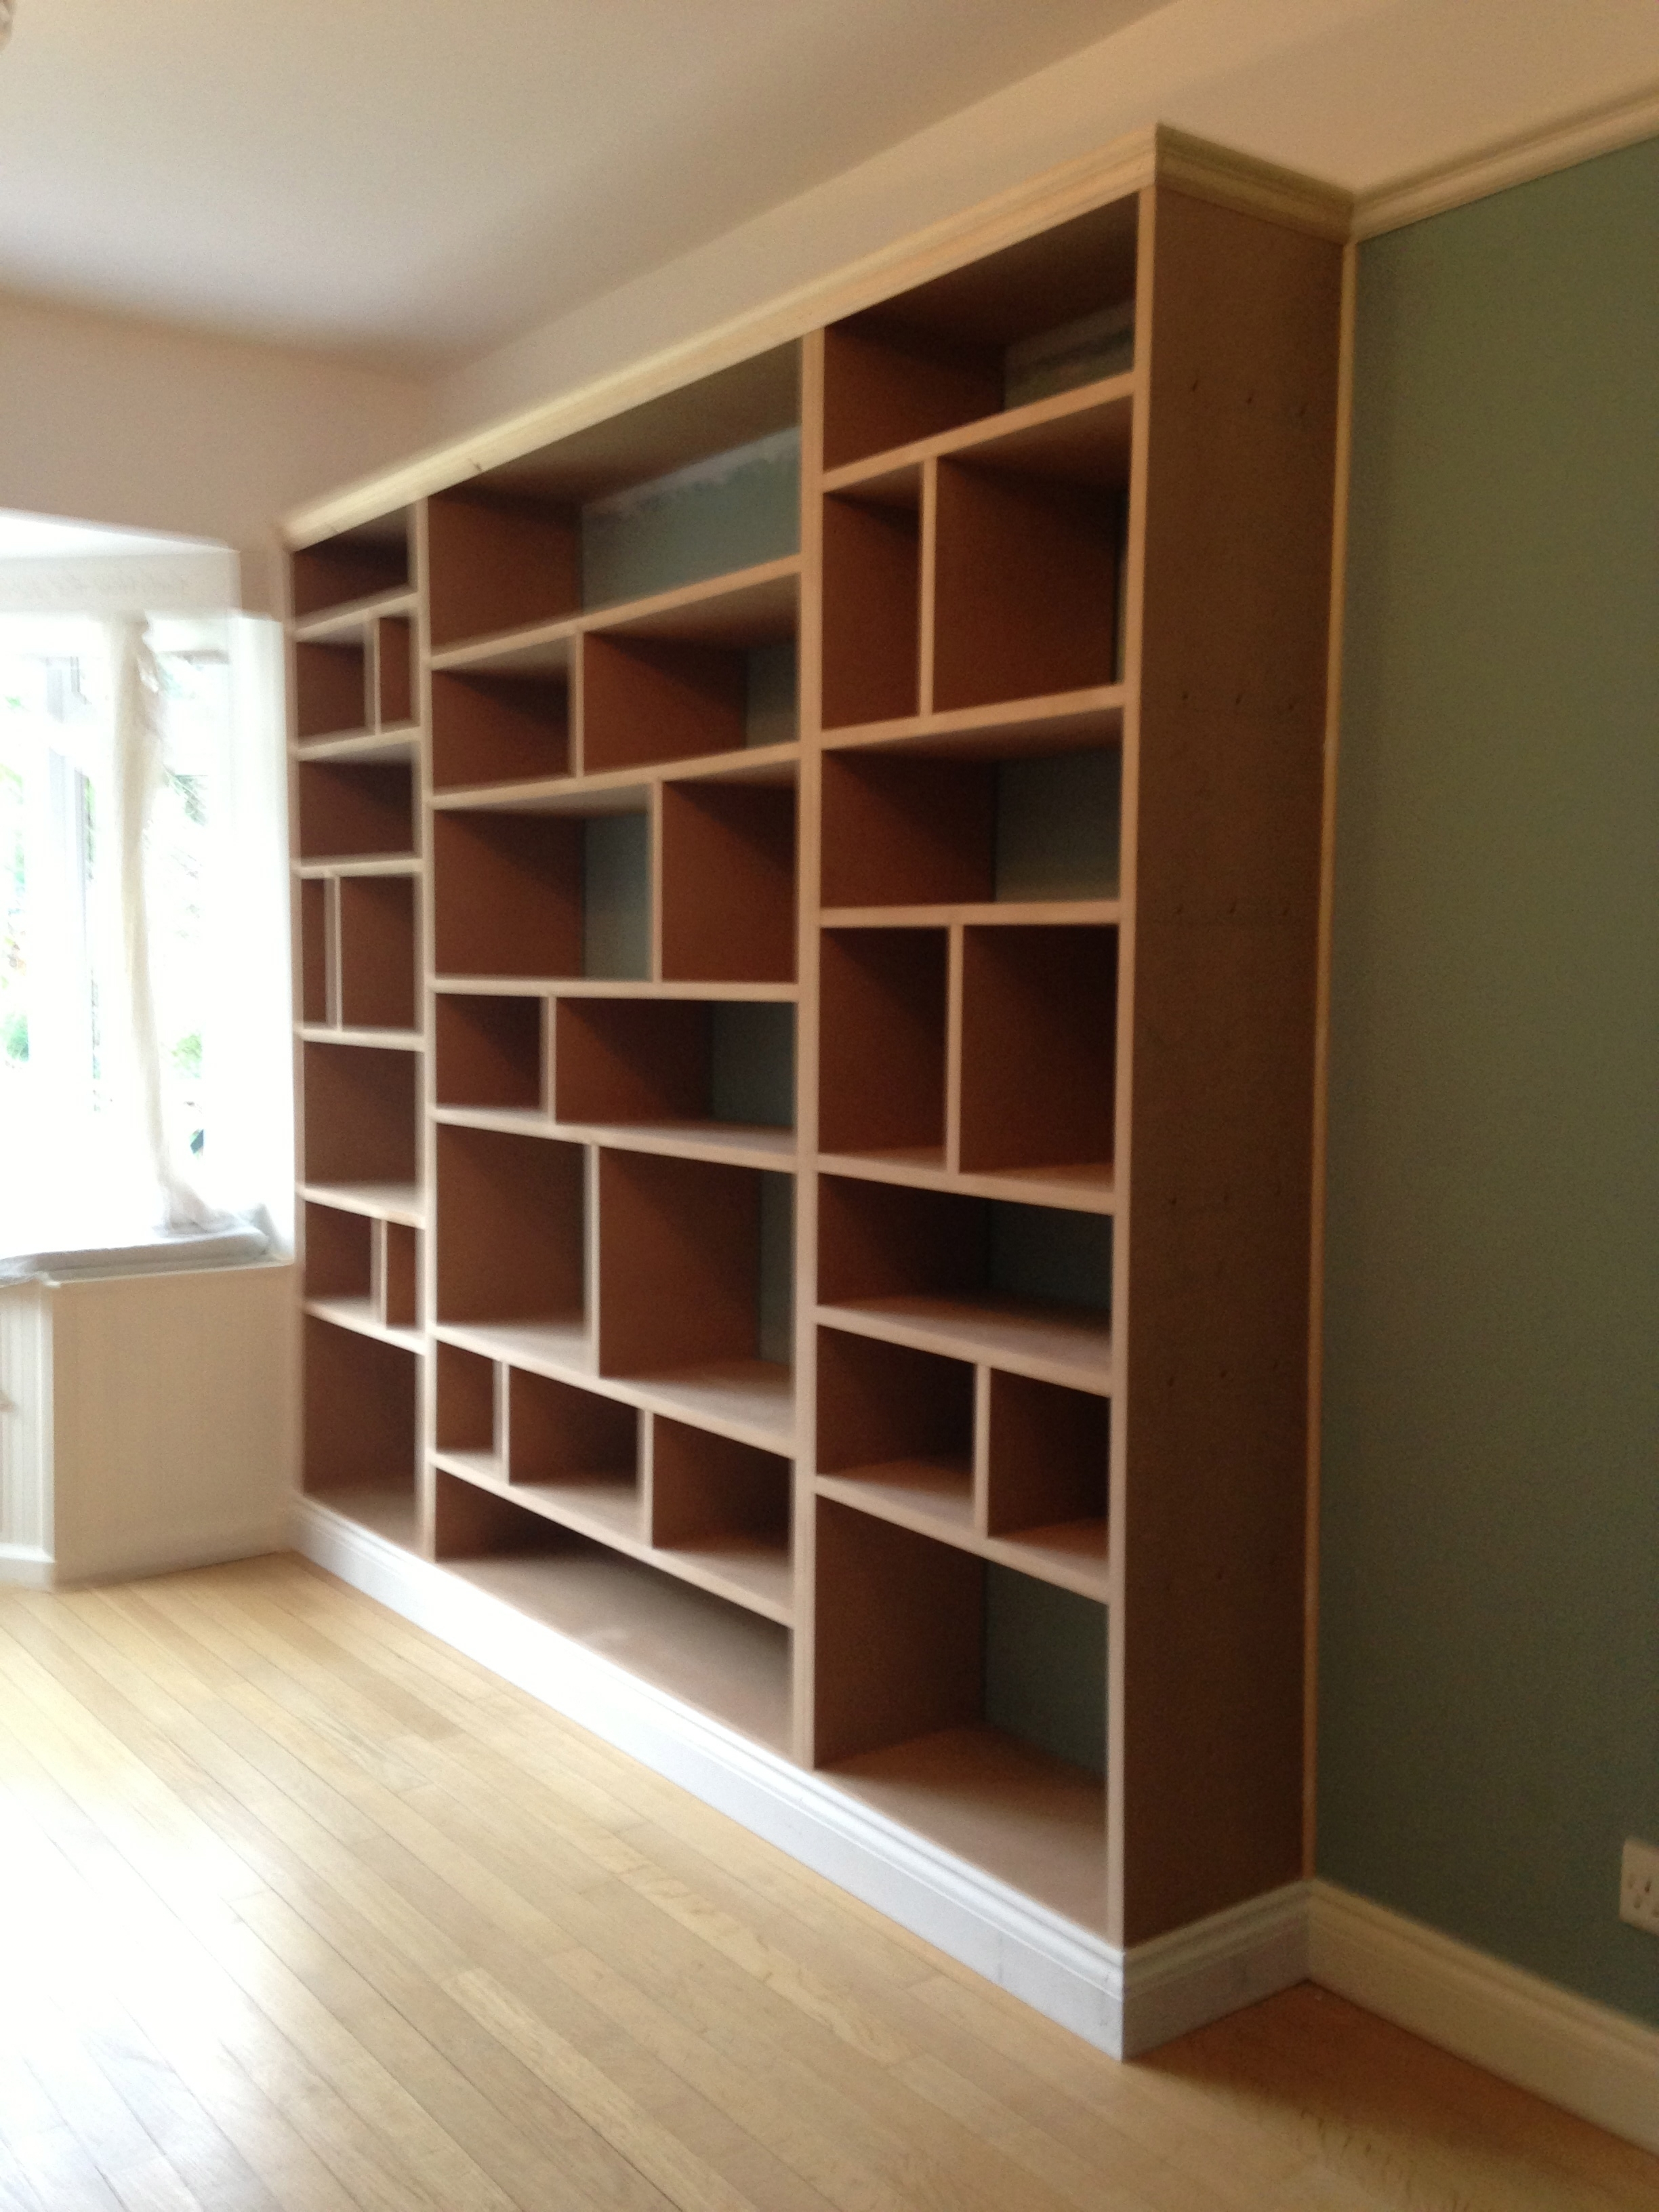 Fitted Shelving, Cupboards And Flooring – P D Carpentry & Building Throughout Most Recent Built In Cupboard Shelving (View 6 of 15)